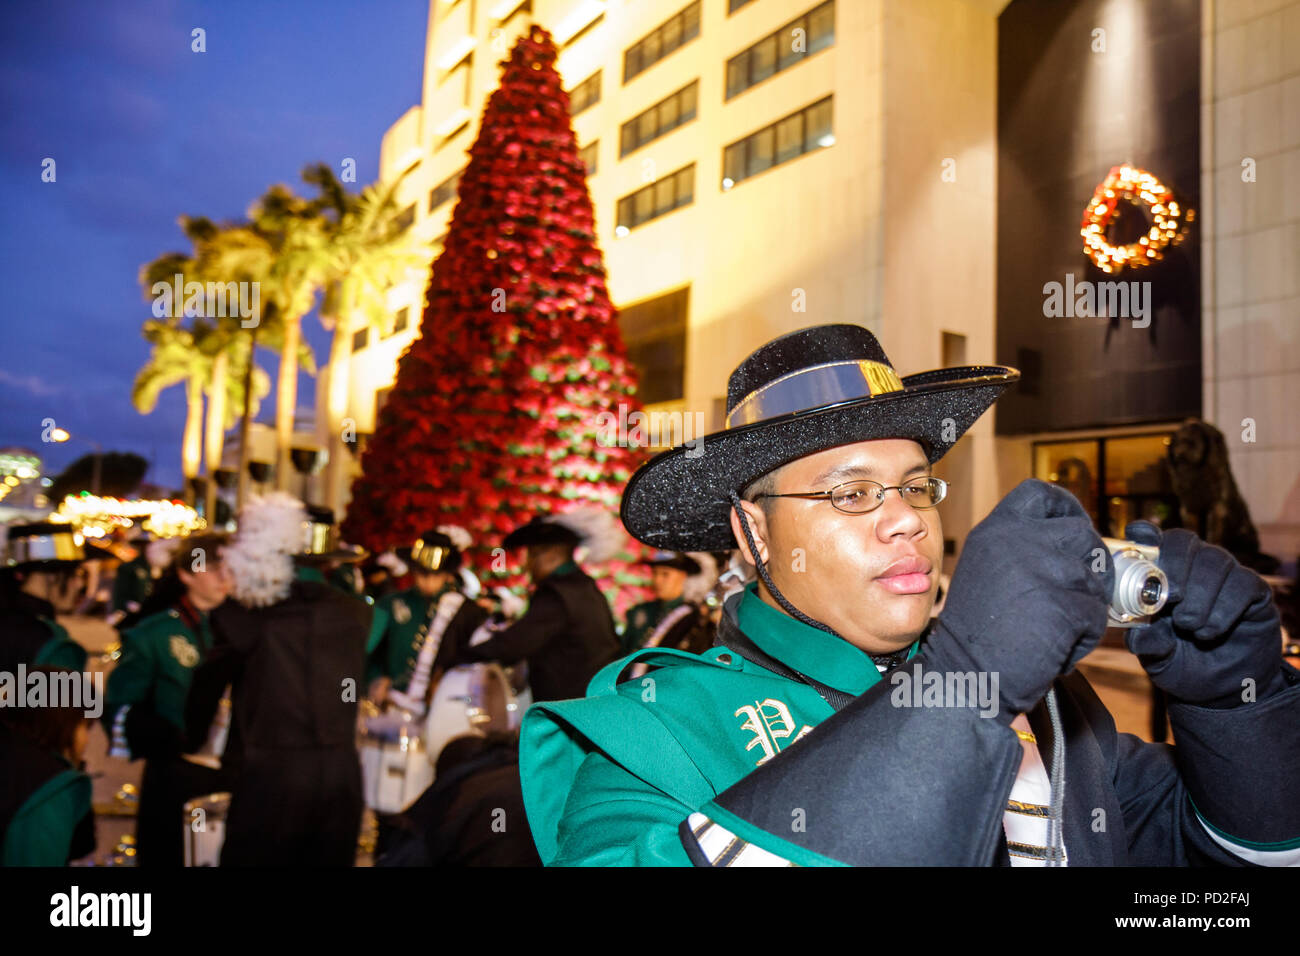 Miami Coral Gables Miami Florida Junior Orange Bowl Parade staging area community family event youth Black boy teen student high schoo - Stock Image